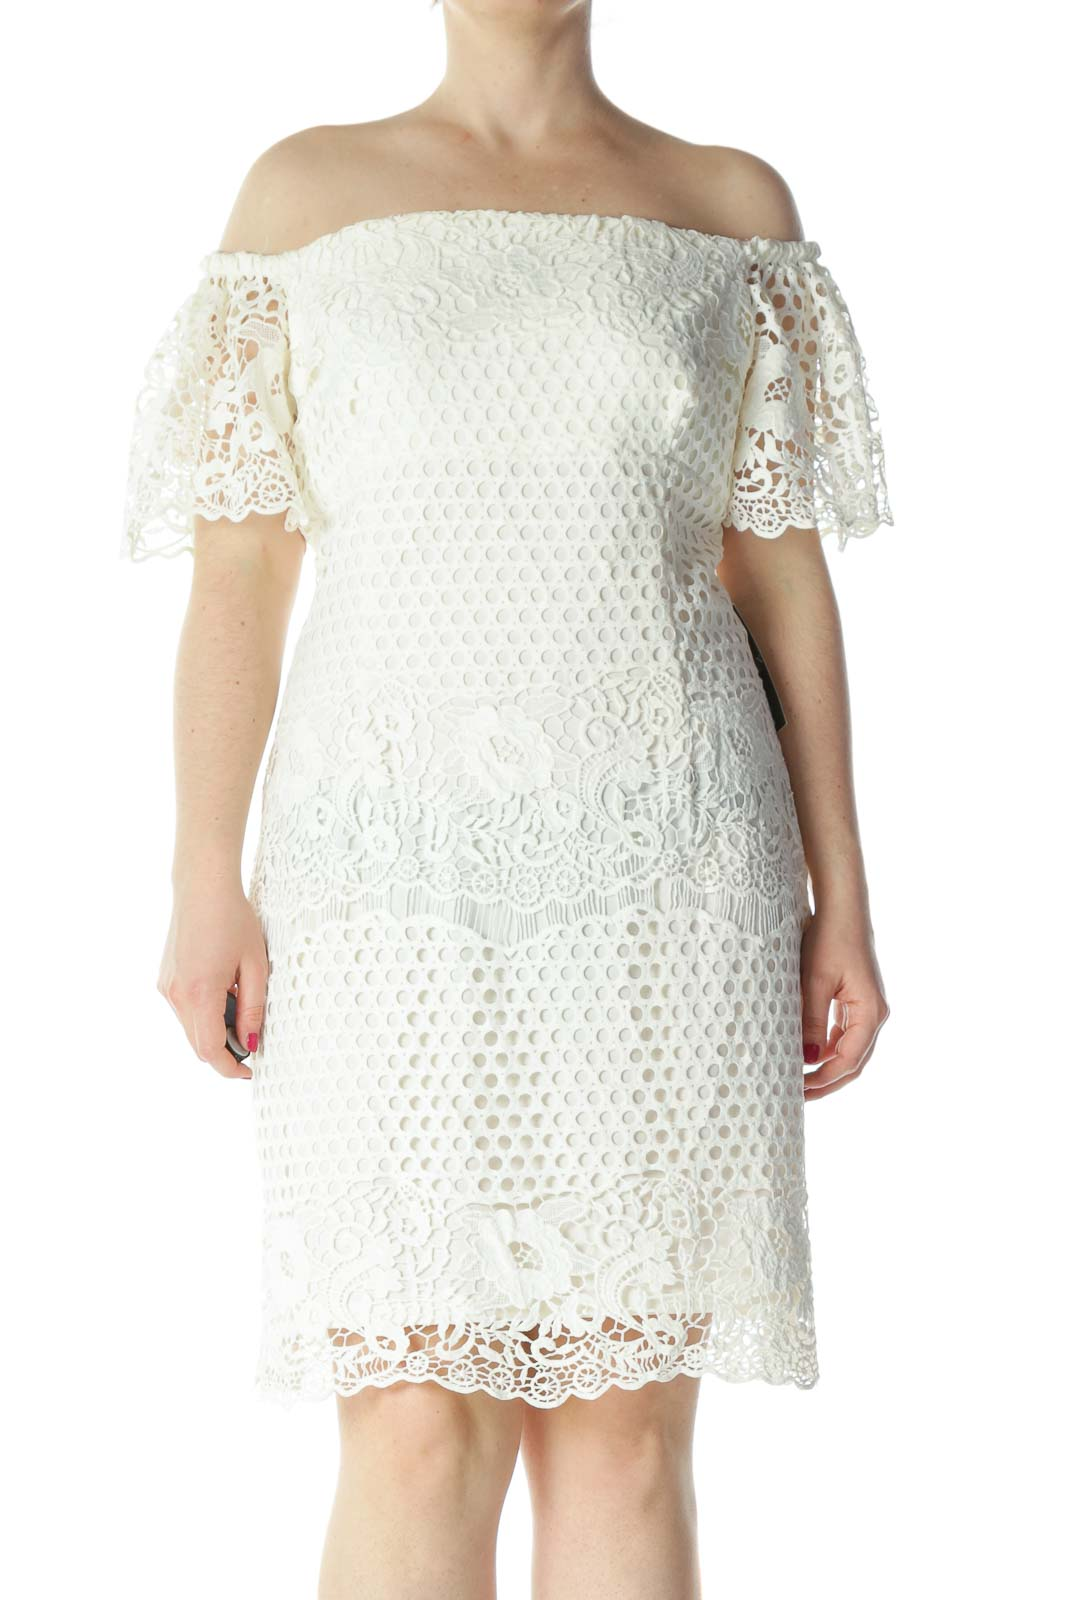 Cream Cold-Shoulder Flower-Knit Eyelet Flared-Sleeves Dress